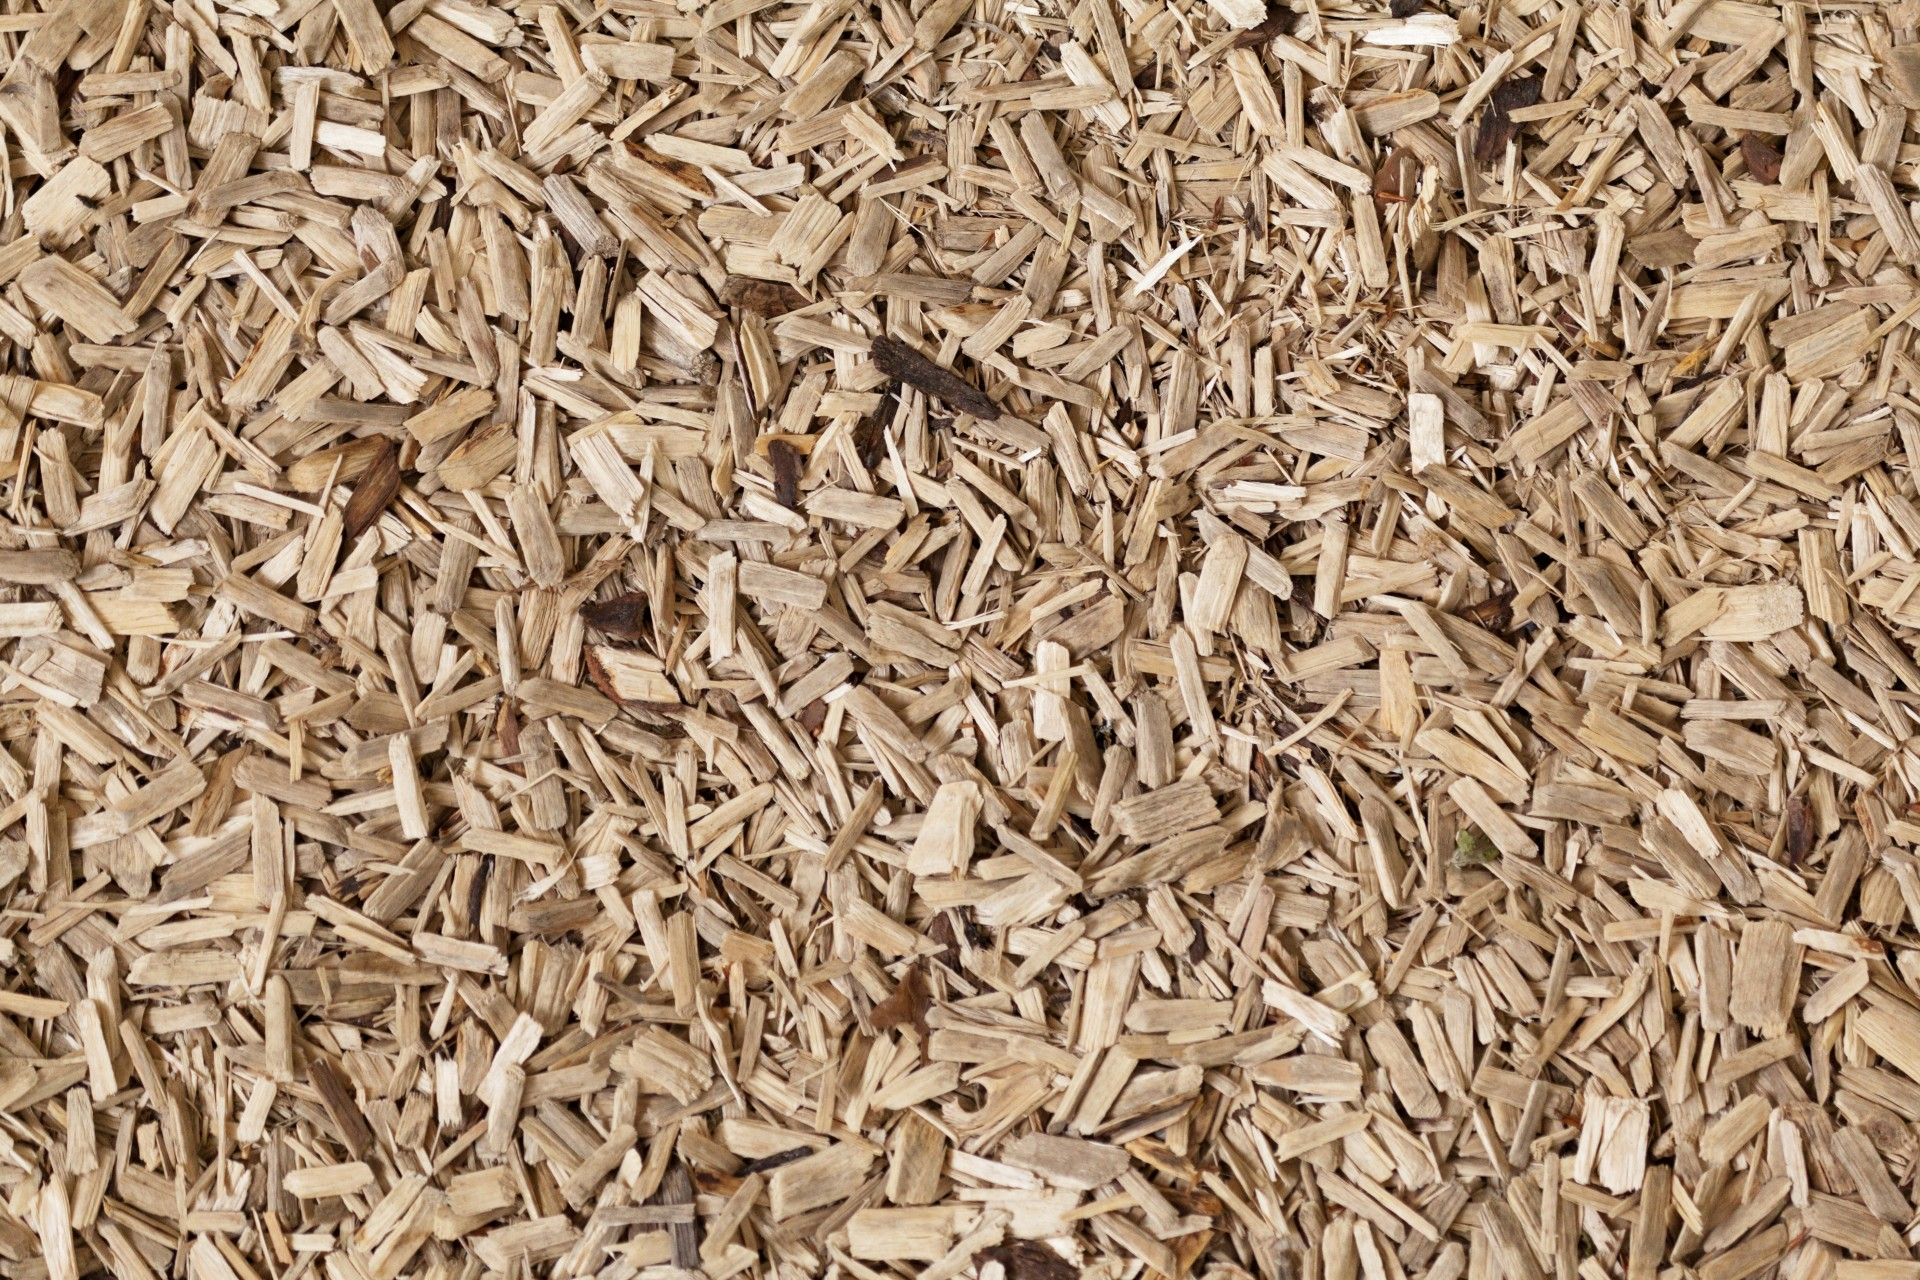 Woodchips Background Free Stock Photo  Public Domain Pictures